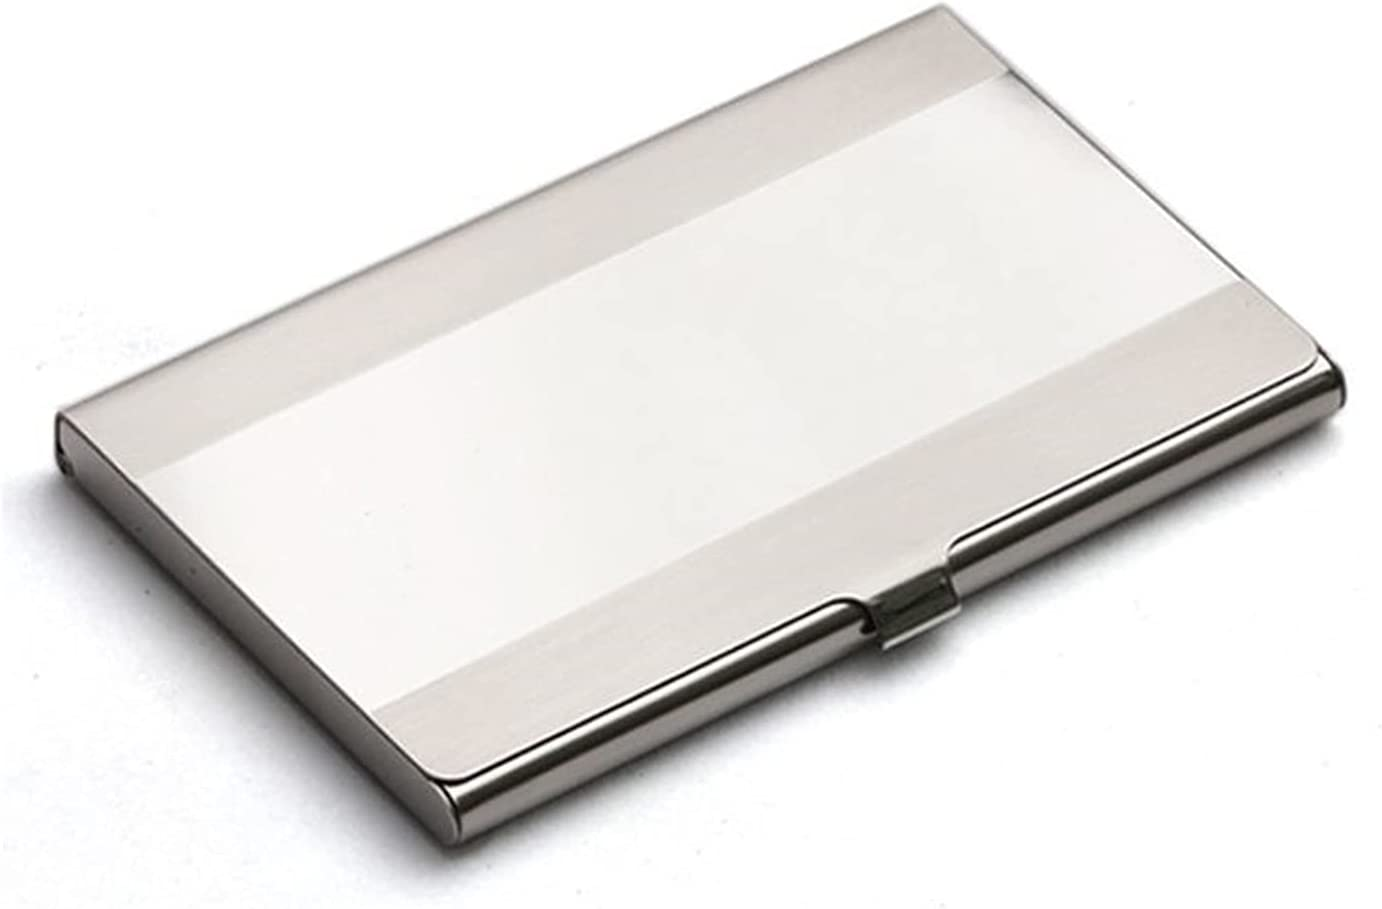 JKXWX Business Card Holder Luxury goods H Max 58% OFF Stainless Steel Metal